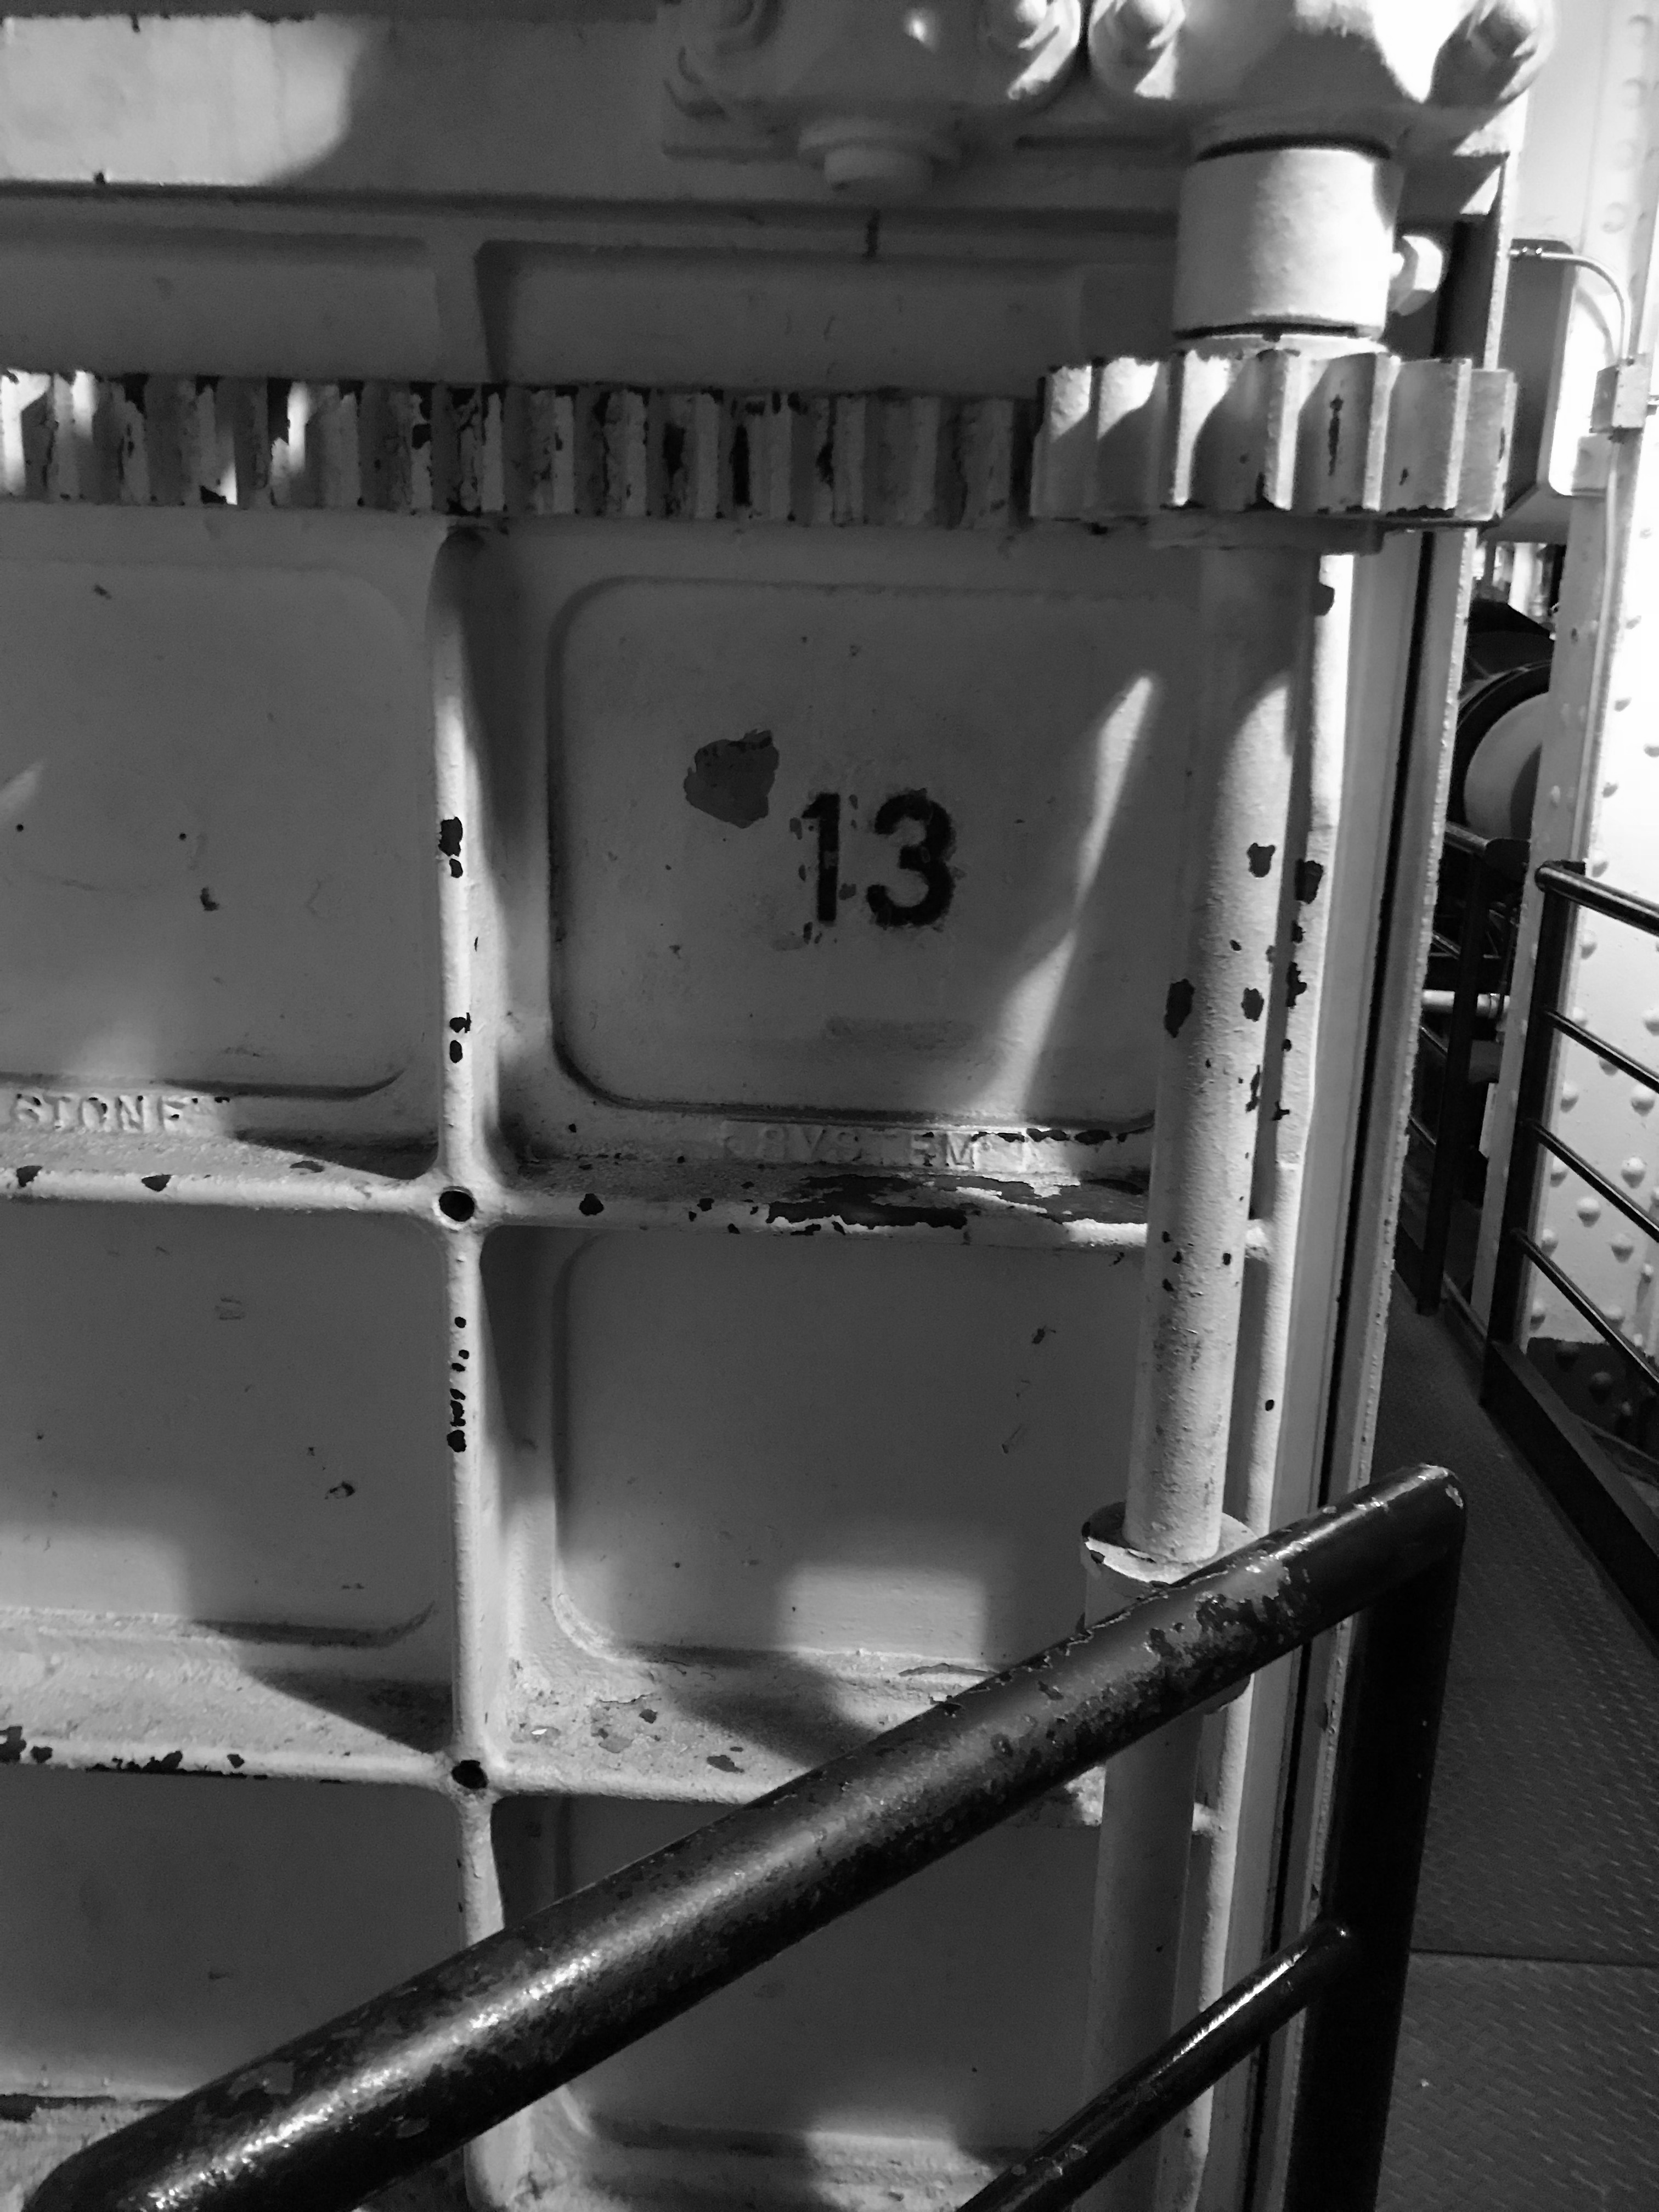 Queen Mary Engine Room: The Haunted Halls Of The RMS Queen Mary